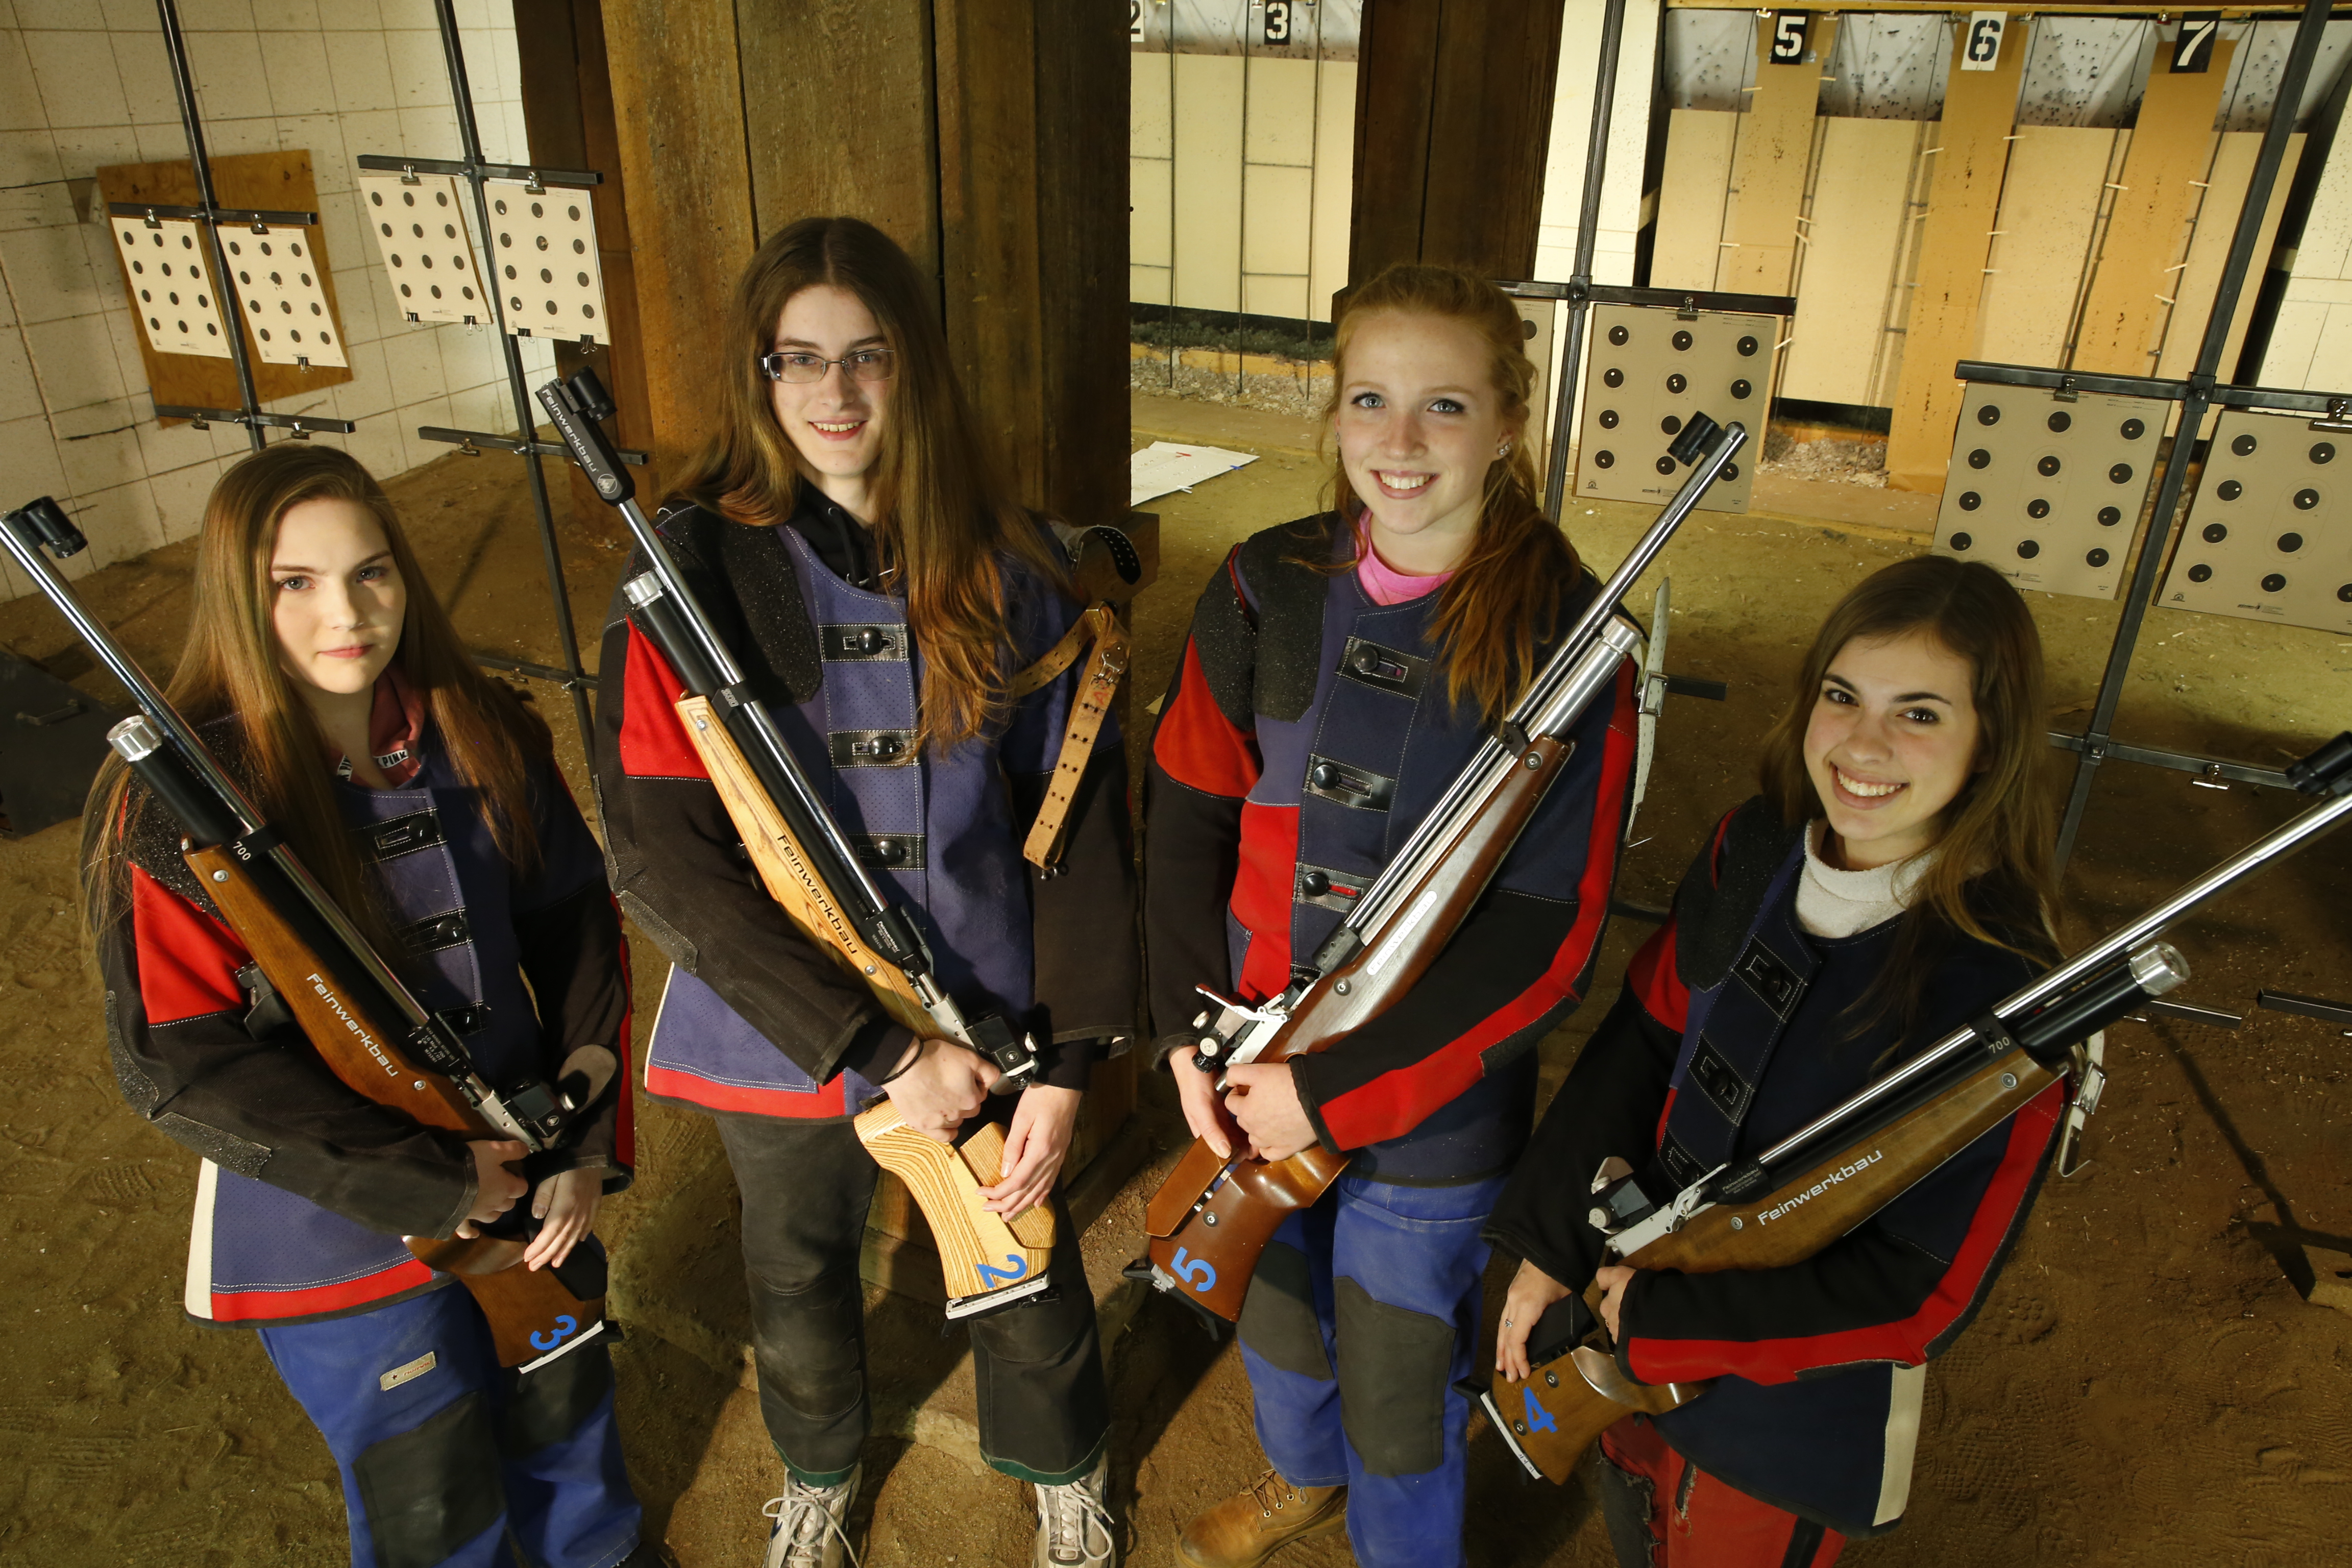 From L-R, Alden shooters Megan Gabbey, Emily Szymanski, Maggie Arnold and Cailyn Bennett. (Harry Scull Jr./Buffalo News)